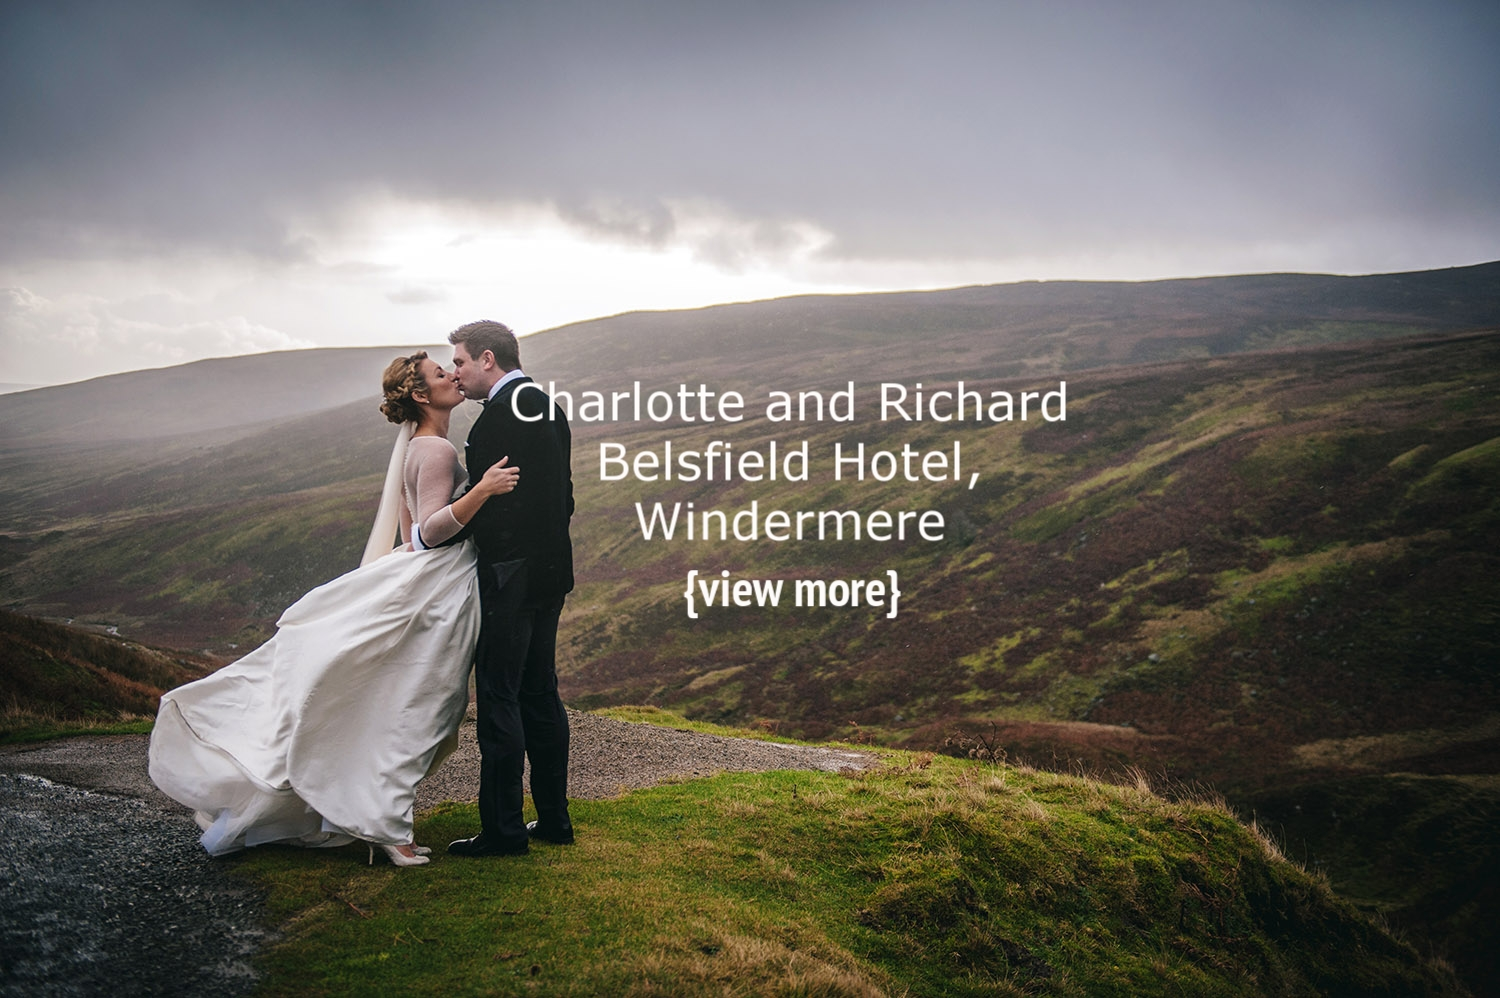 C&R The Belsfield